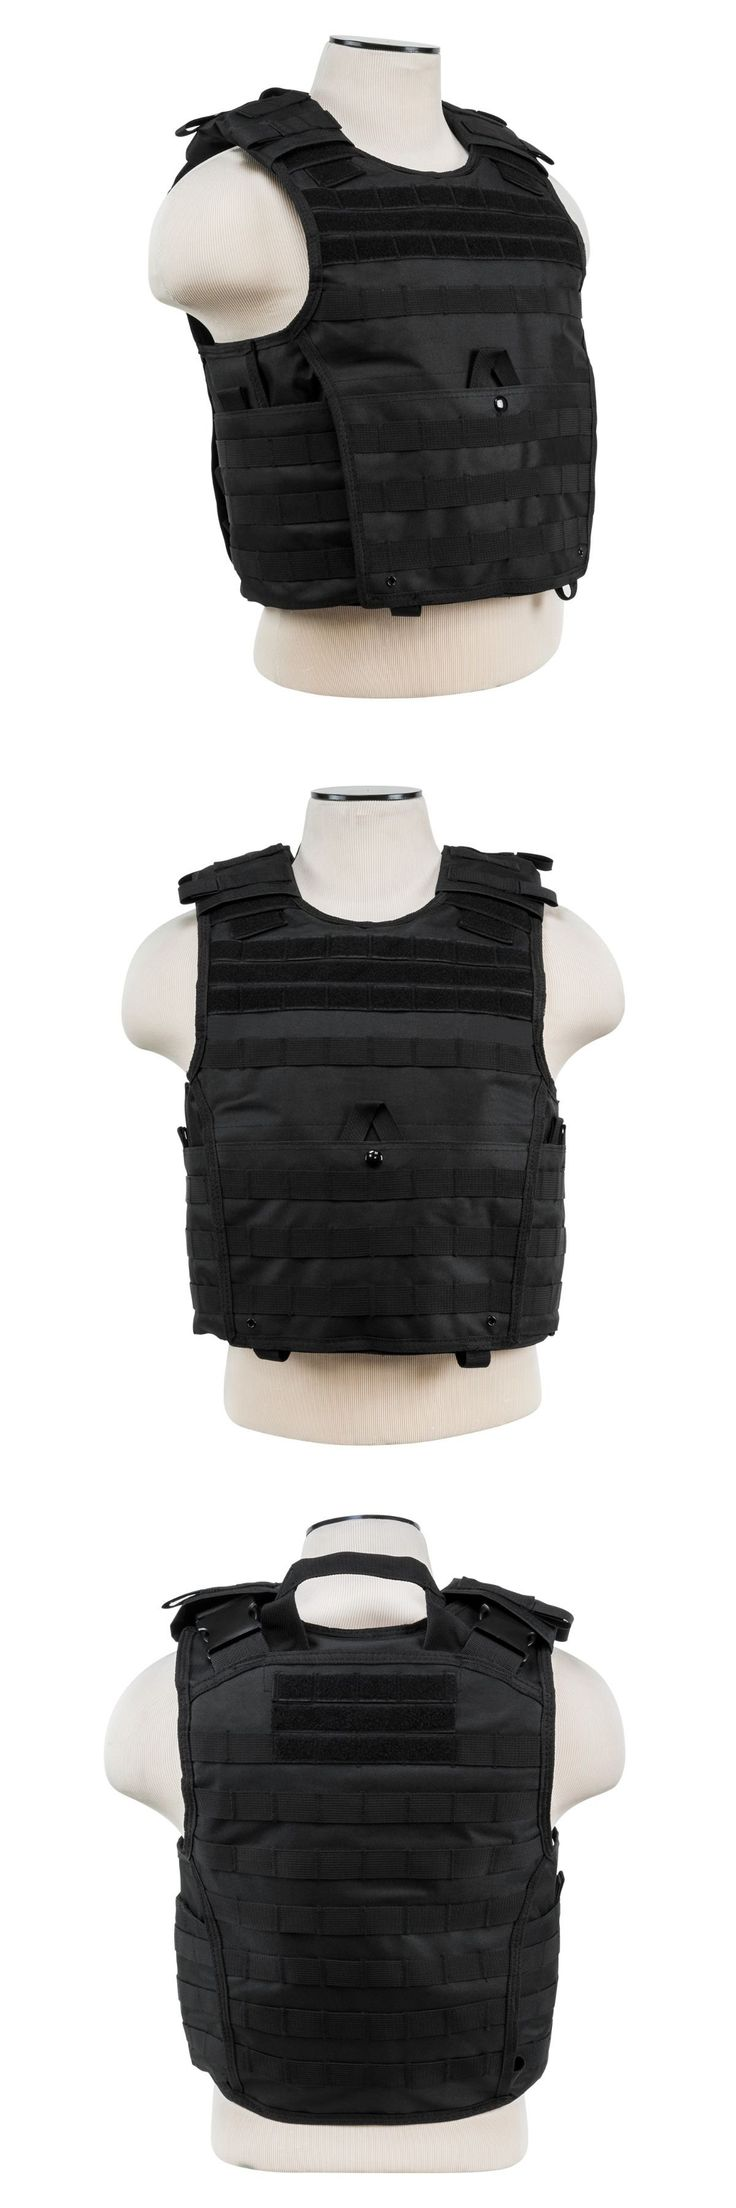 Chest Rigs and Tactical Vests 177891: Ncstar Vism Black Tactical Molle Operator Plate Carrier Body Armor Chest Rig Sm -> BUY IT NOW ONLY: $39.85 on eBay!